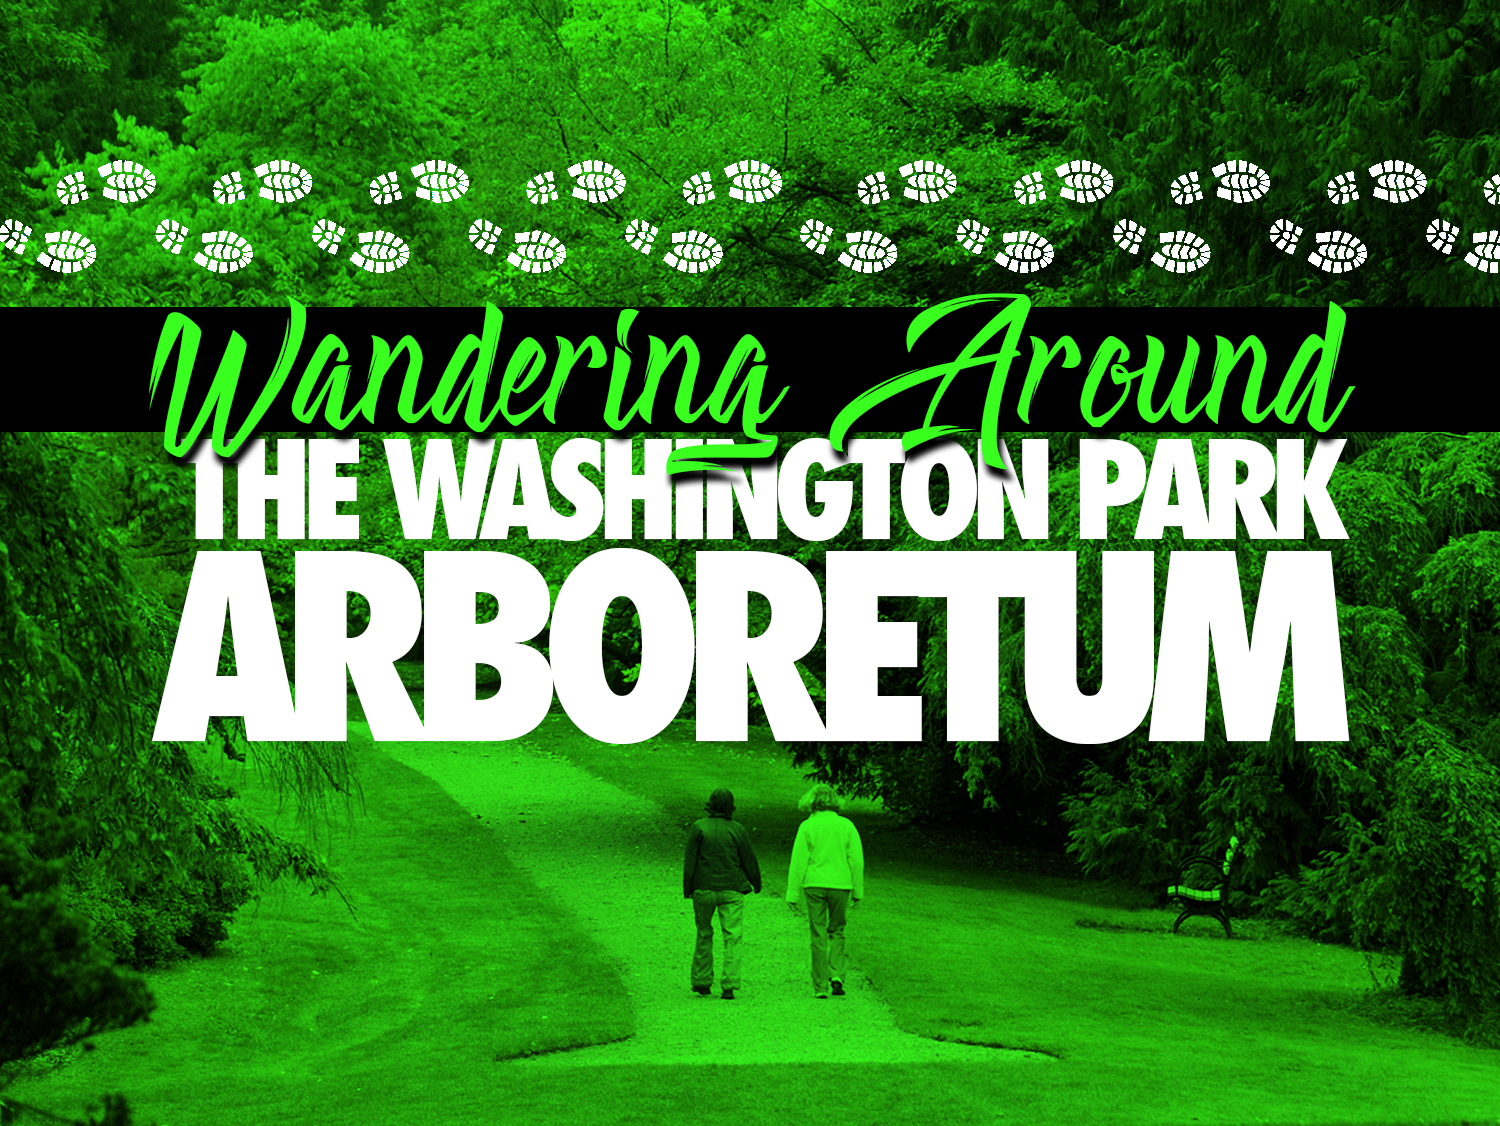 Wandering Around The Washington Park Arboretum